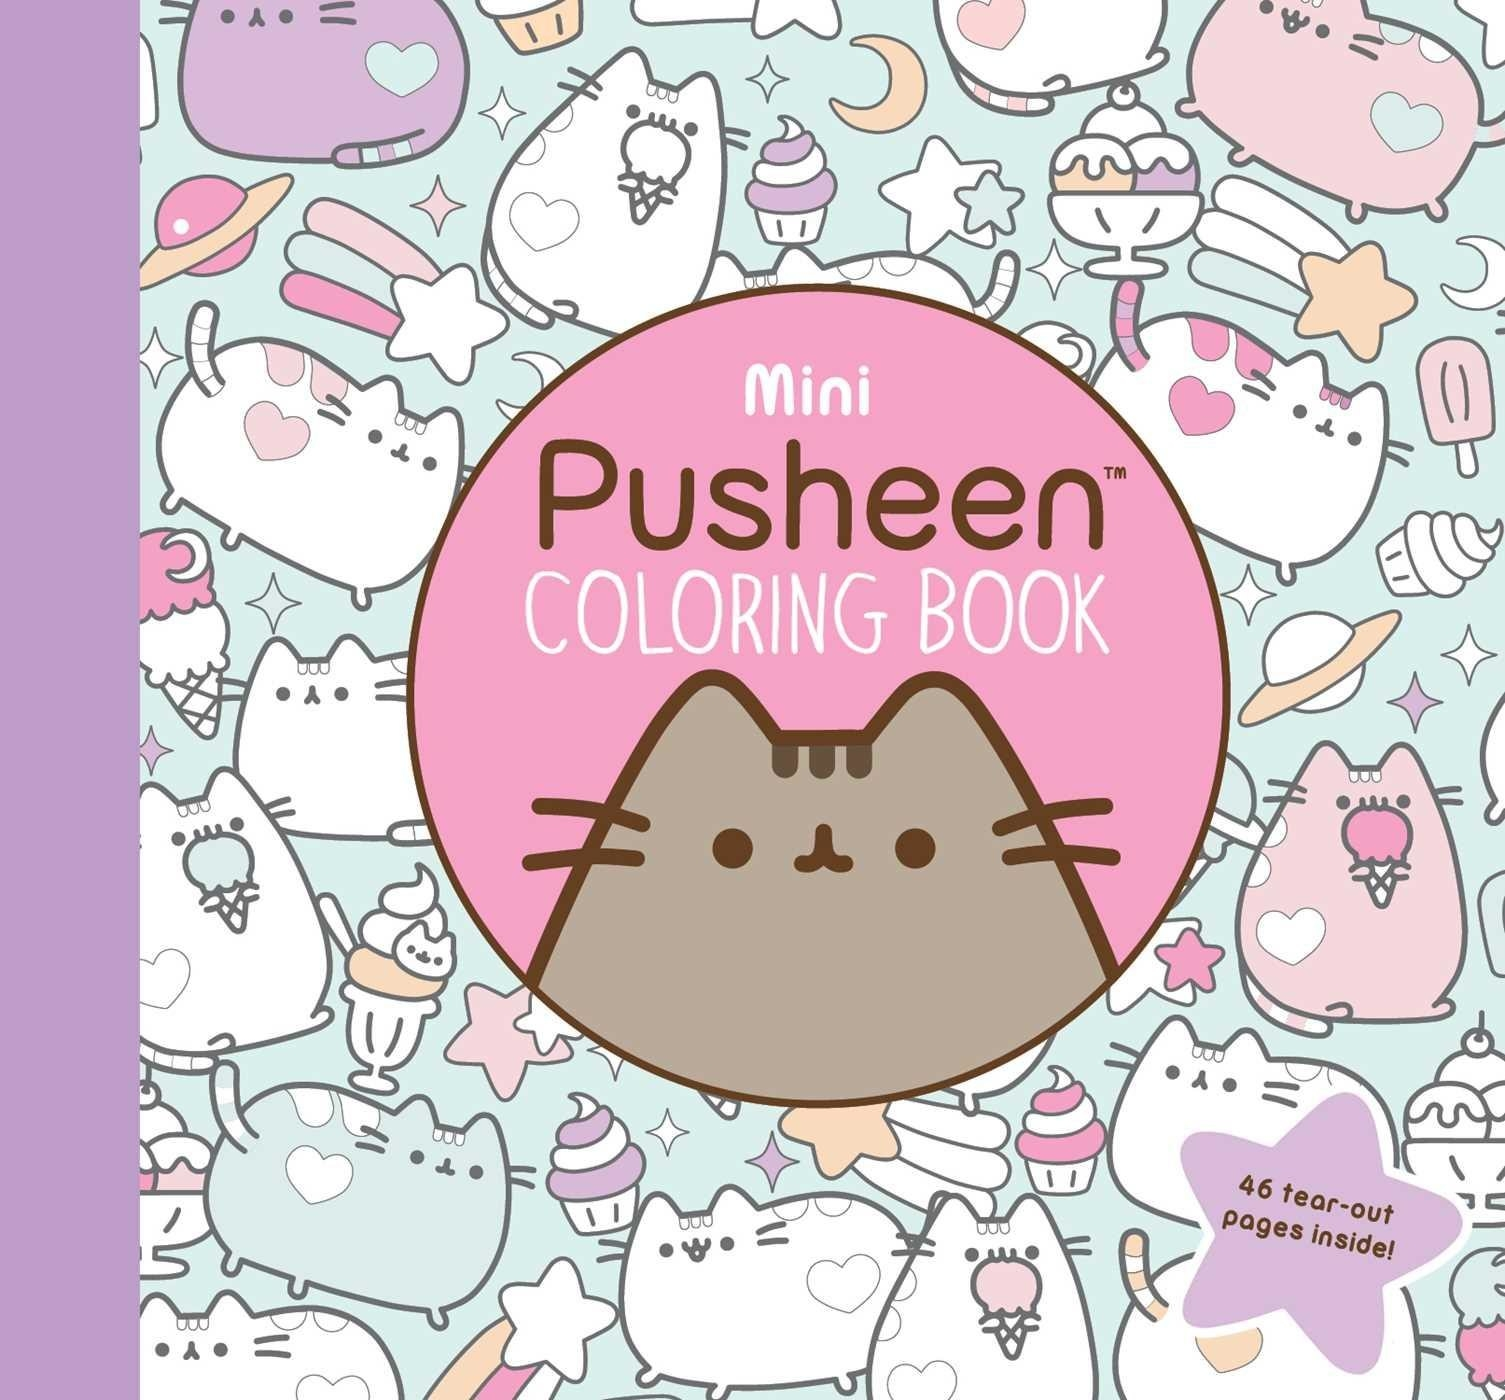 A Pusheen coloring book with various sketches of Pusheen, cupcakes, stars, and ice cream cones